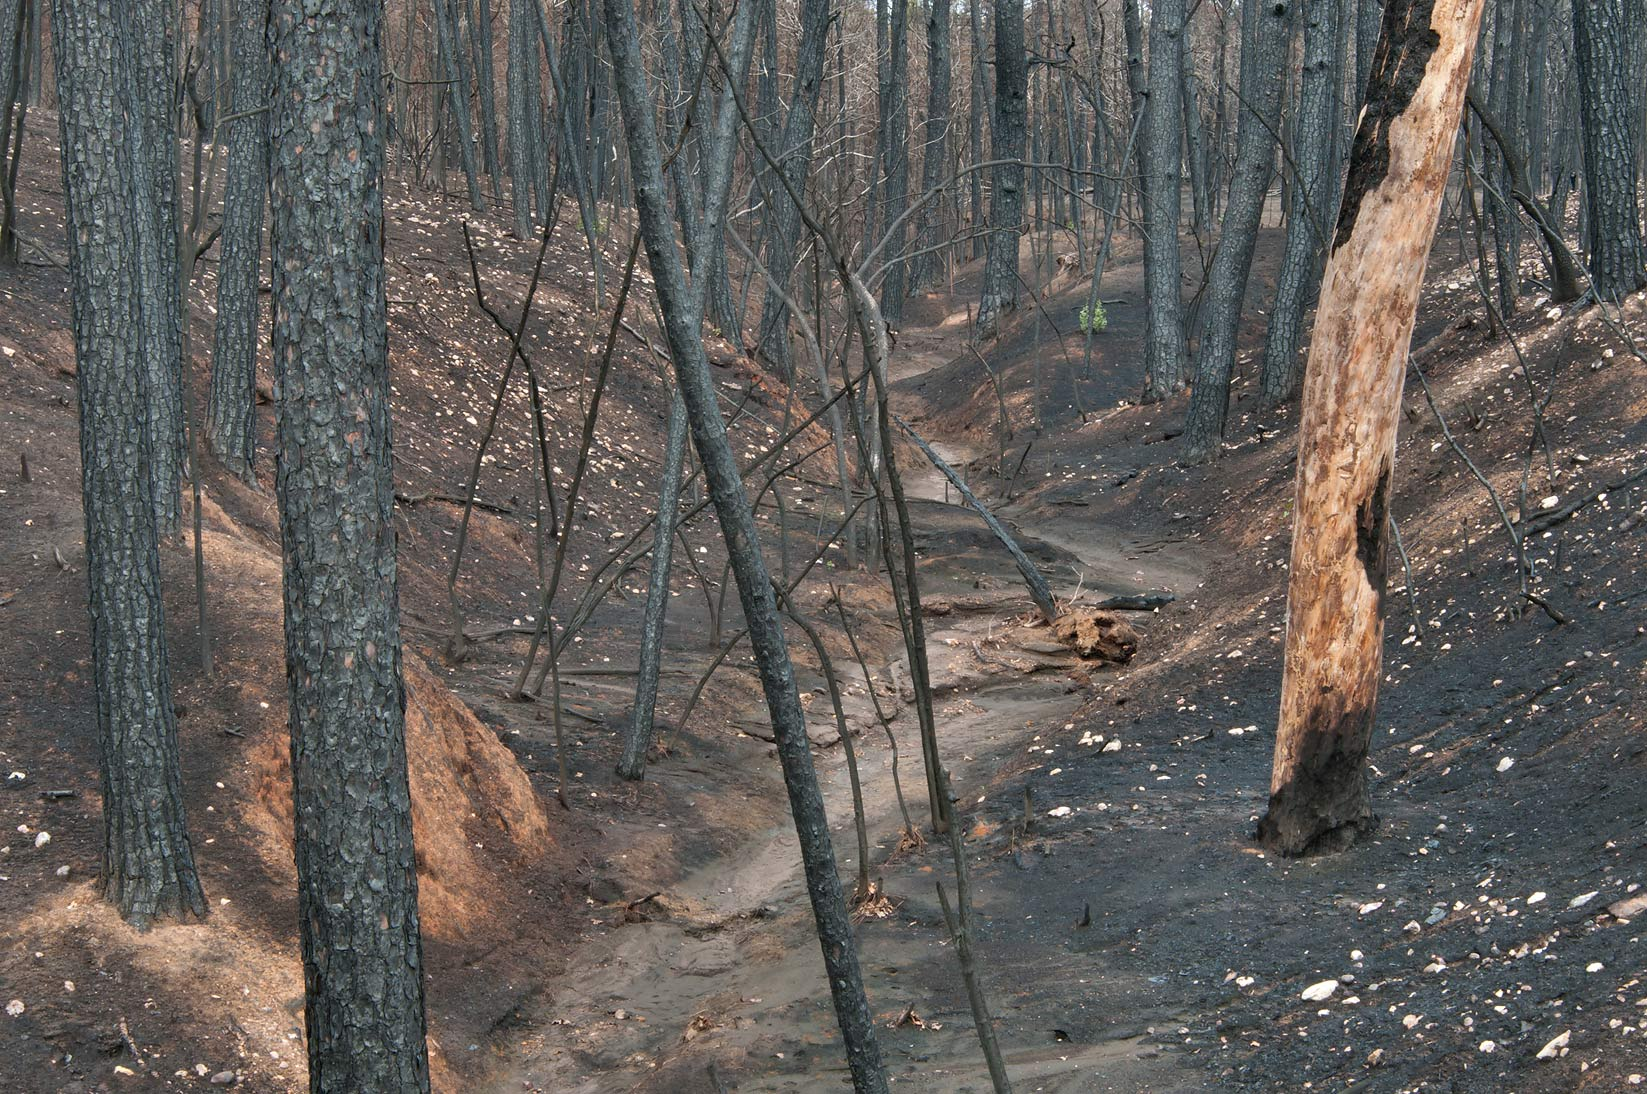 Forest damaged by fire in Bastrop State Park. Bastrop, Texas